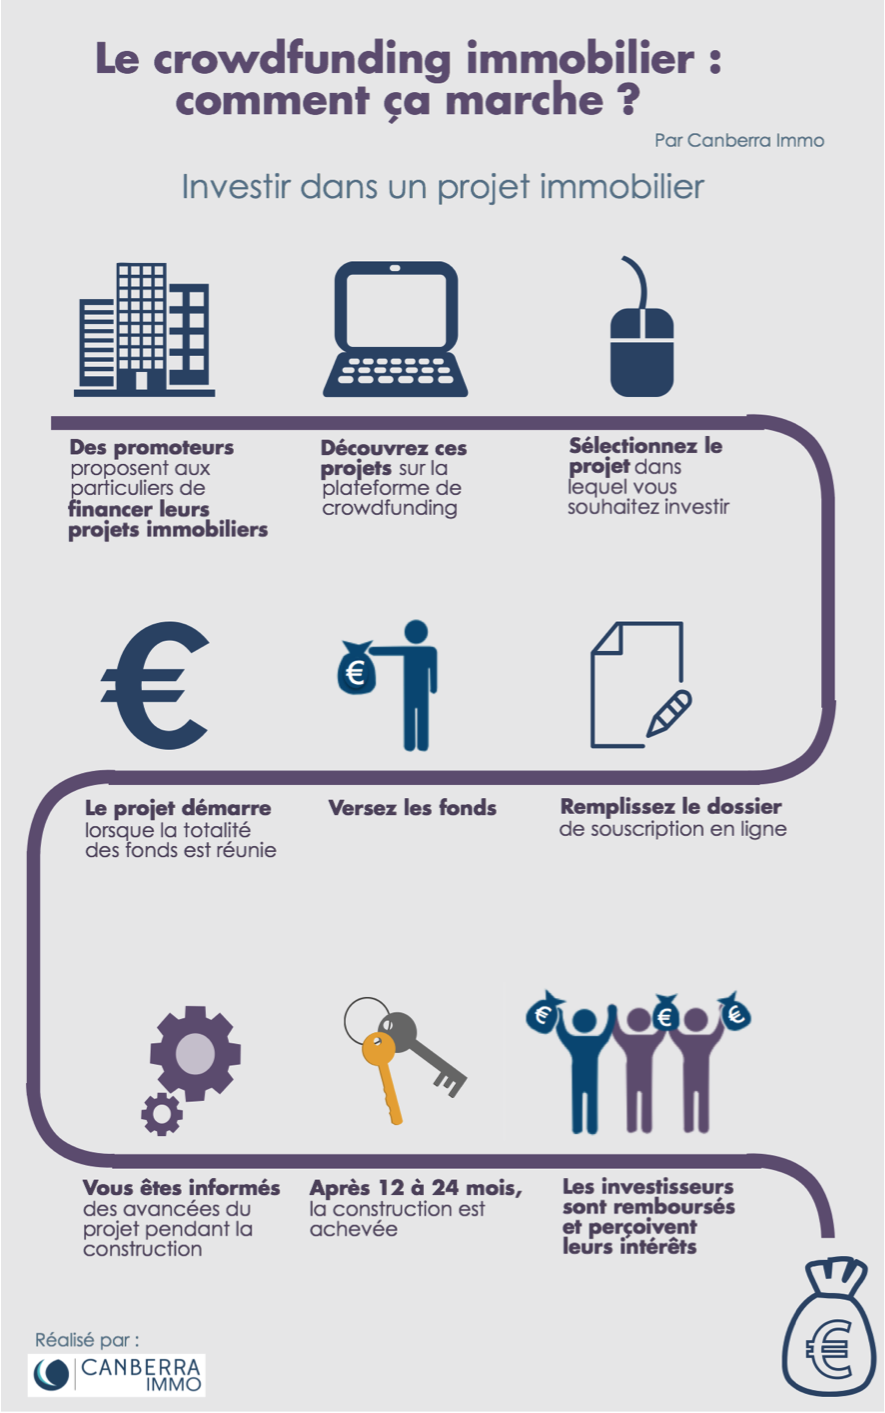 infographie crowdfunding immobilier comment a marche crowd pinterest comment a marche. Black Bedroom Furniture Sets. Home Design Ideas